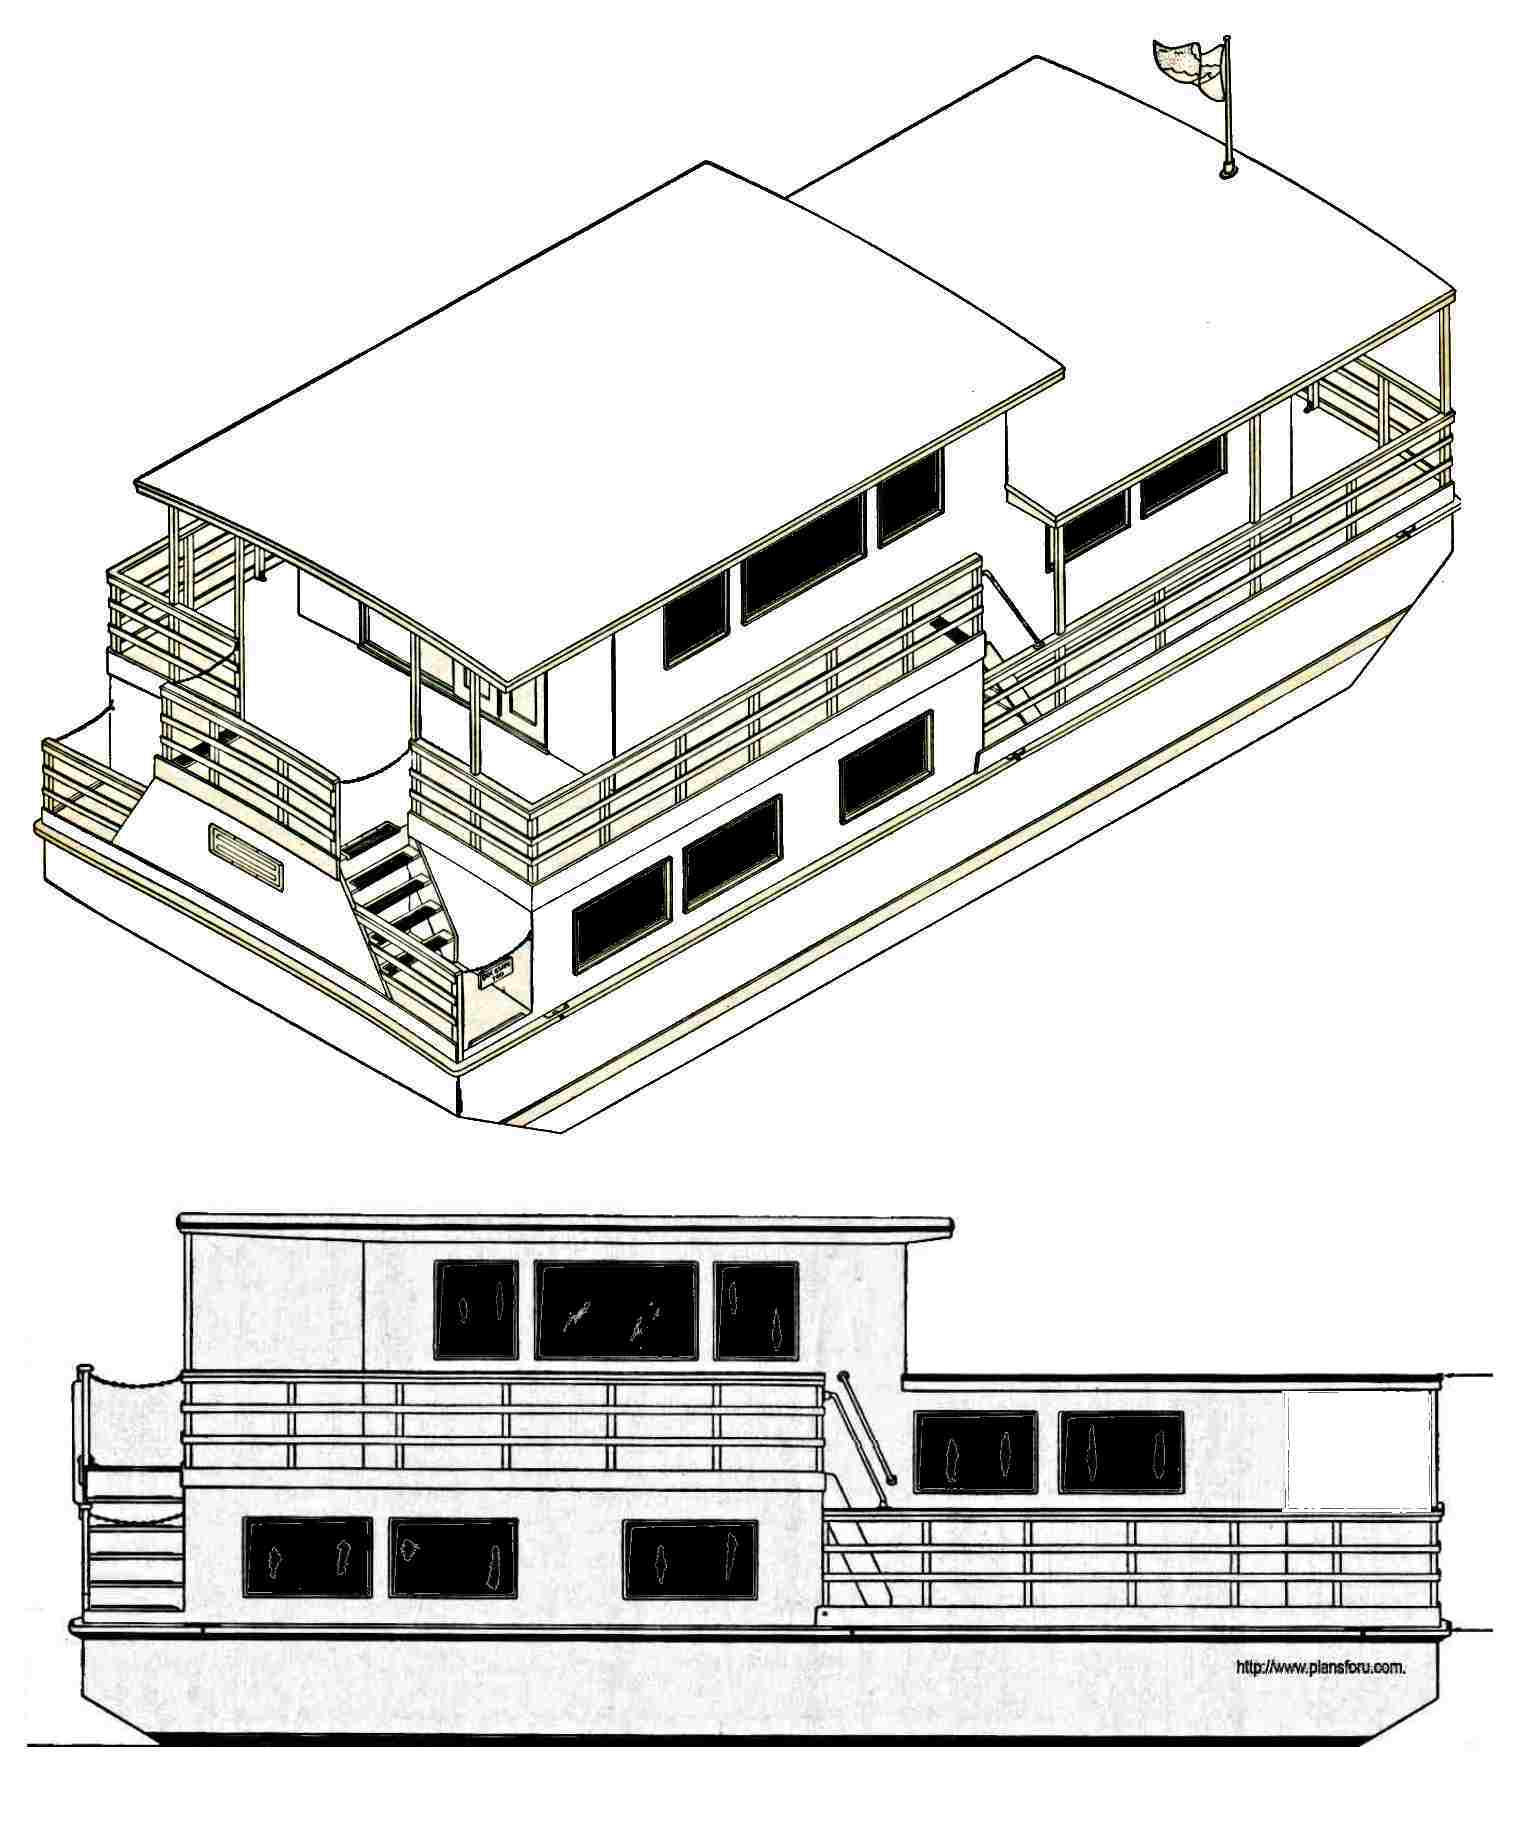 Excellent house boat plans pictures best inspiration for Boat house designs plans